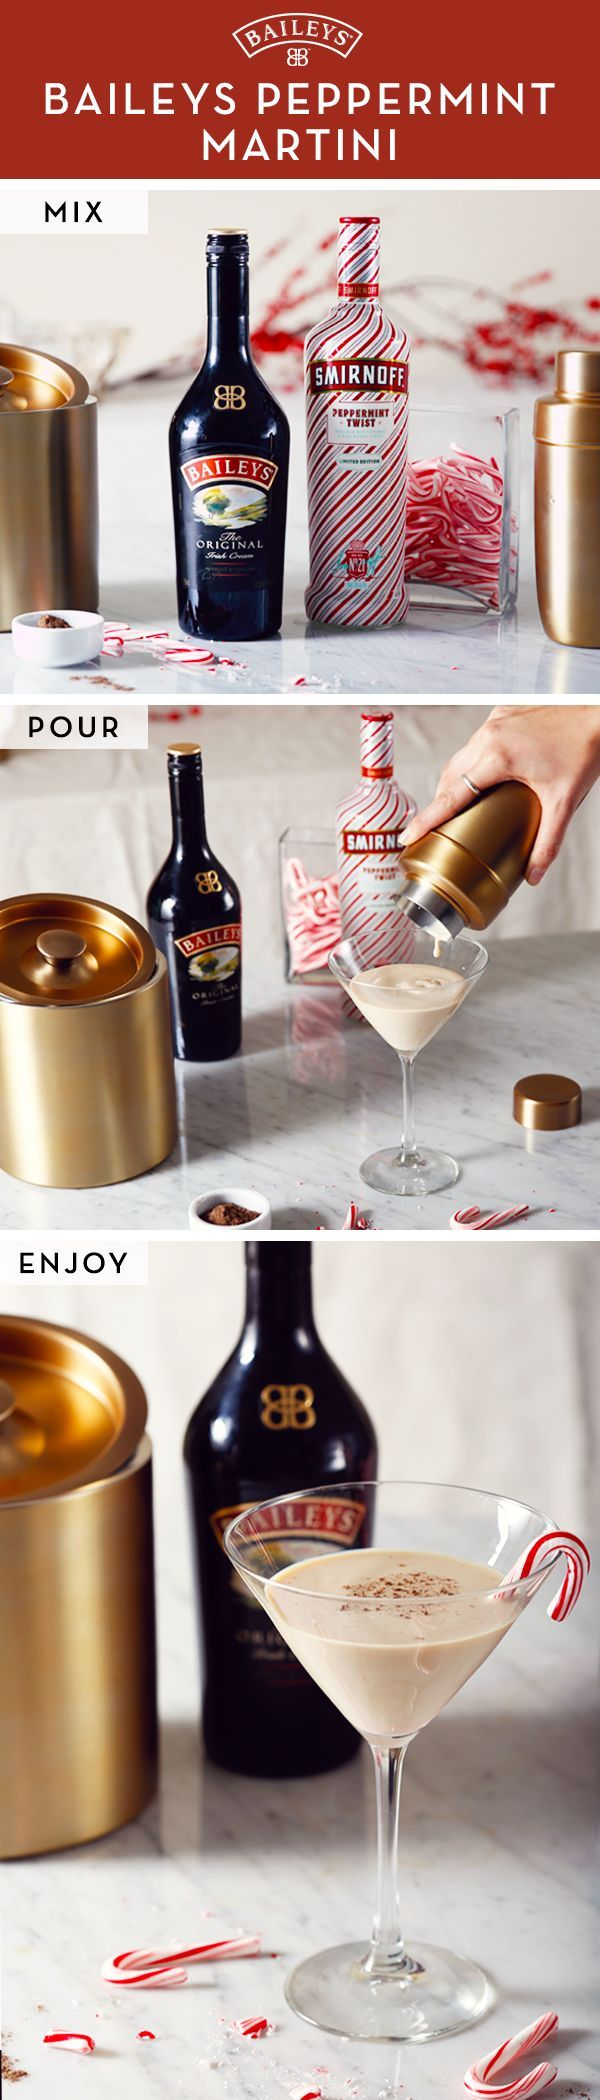 Paint your martinis red & white for the holidays! This sweet Baileys™ cocktail has the perfect hint of peppermint and vodka. If you're hostessing this season, there's no doubt your dinner party guests will love it. Try our easy 3-step recipe and enjoy!   1. Shake 1.25oz Smirnoff® Peppermint Twist & 0.5oz Baileys™ Original Irish Cream over ice. 2. Strain into a chilled martini glass. 3. Garnish with grated nutmeg and a mini candy cane.